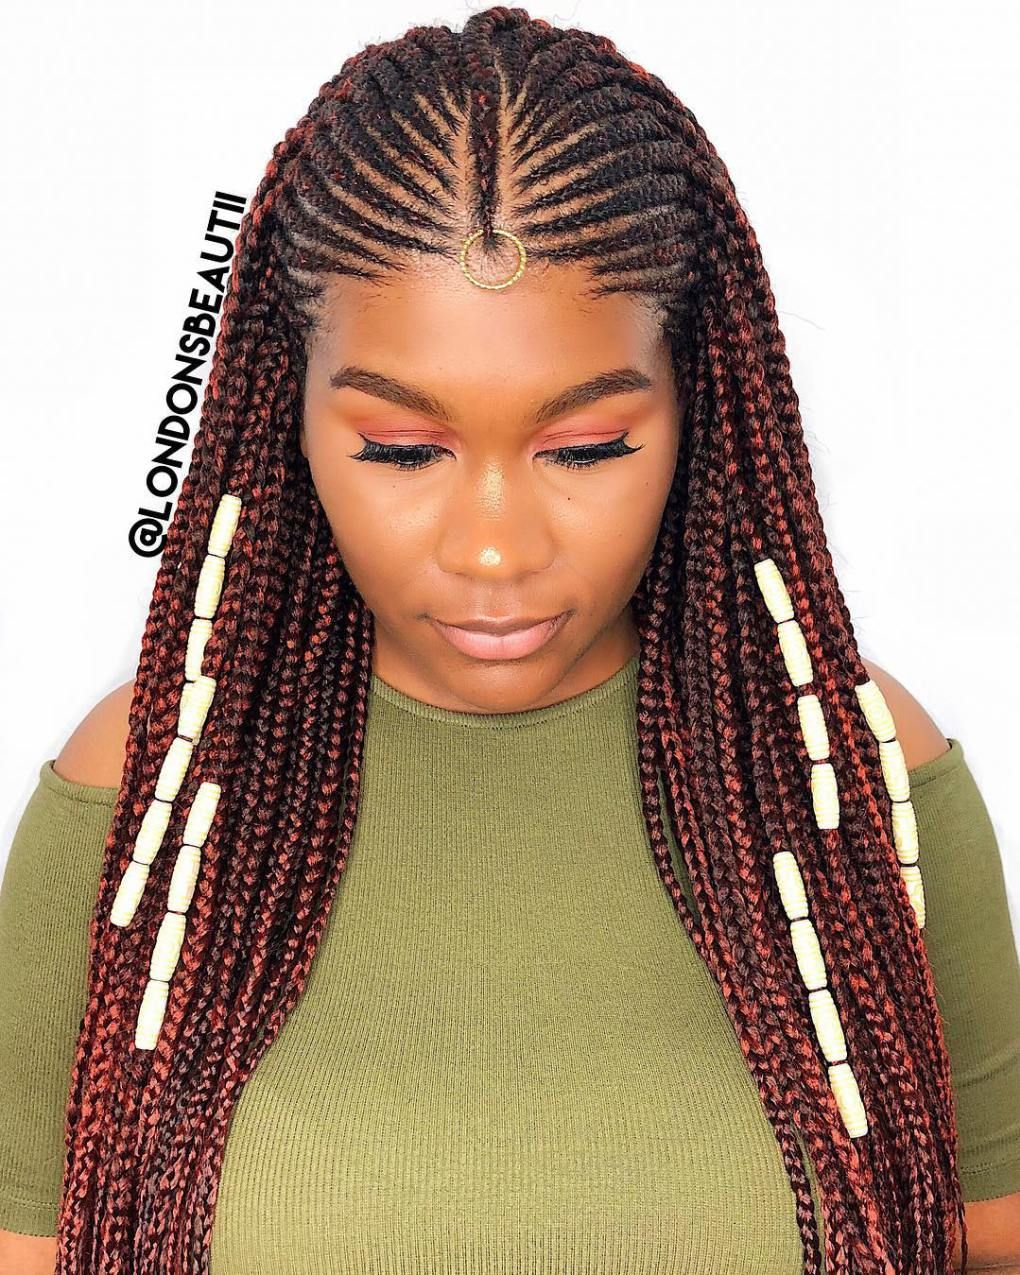 20 amazing fulani braids for women of all ages braids